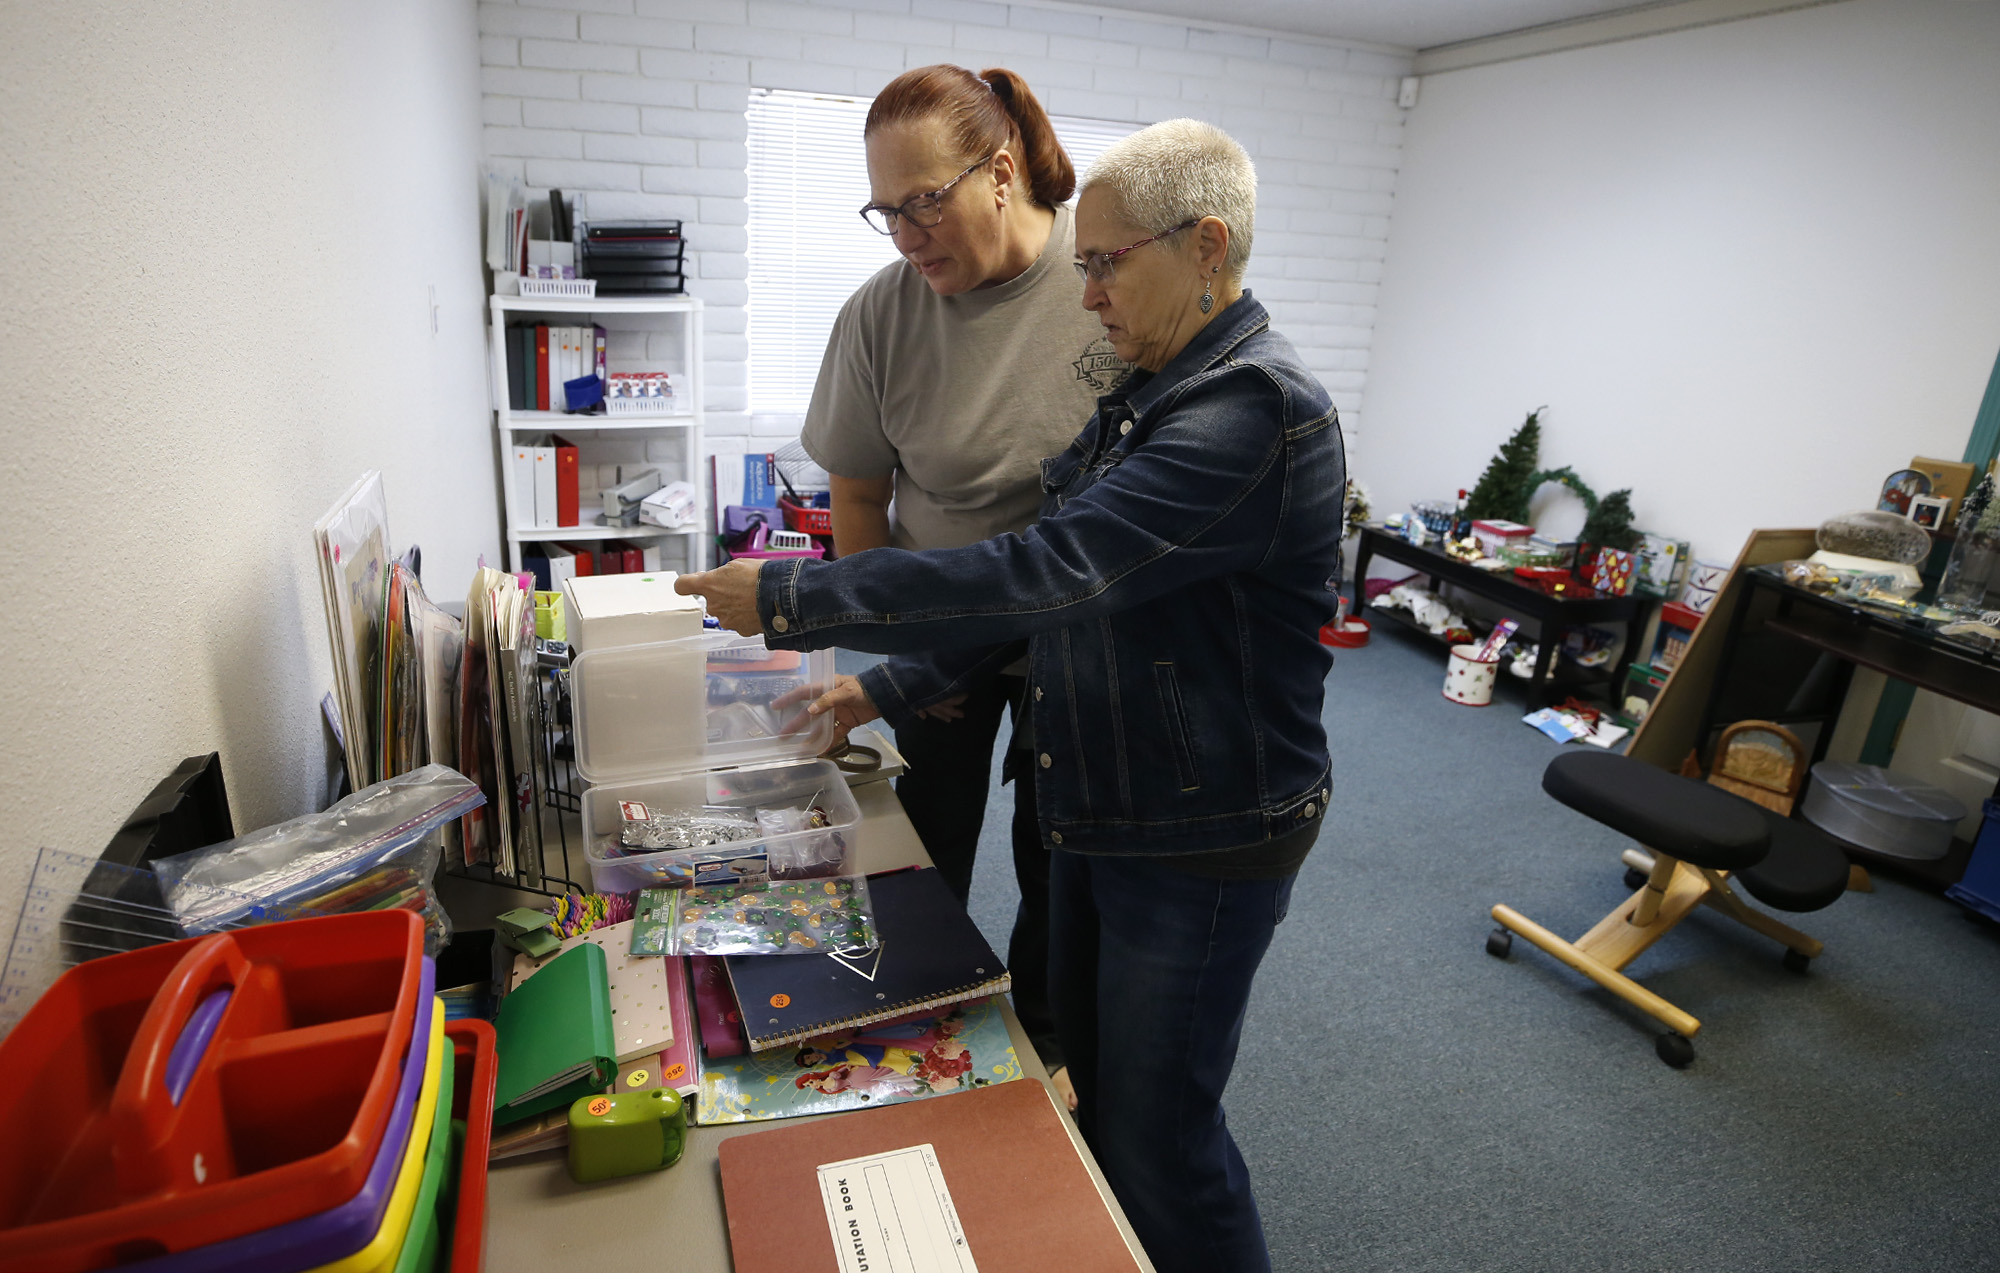 Chauna Renaud and Vickie Polzien look through items at the rummage sale benefitting Lighthouse Lodge, in Carson City, Nev., on Saturday, June 13, 2020. Organizers hold a weekly BBQ and ongoing rummage sale to raise funds for creating a re-entry program for Carson City women being released from incarceration.  Photo by Cathleen Allison